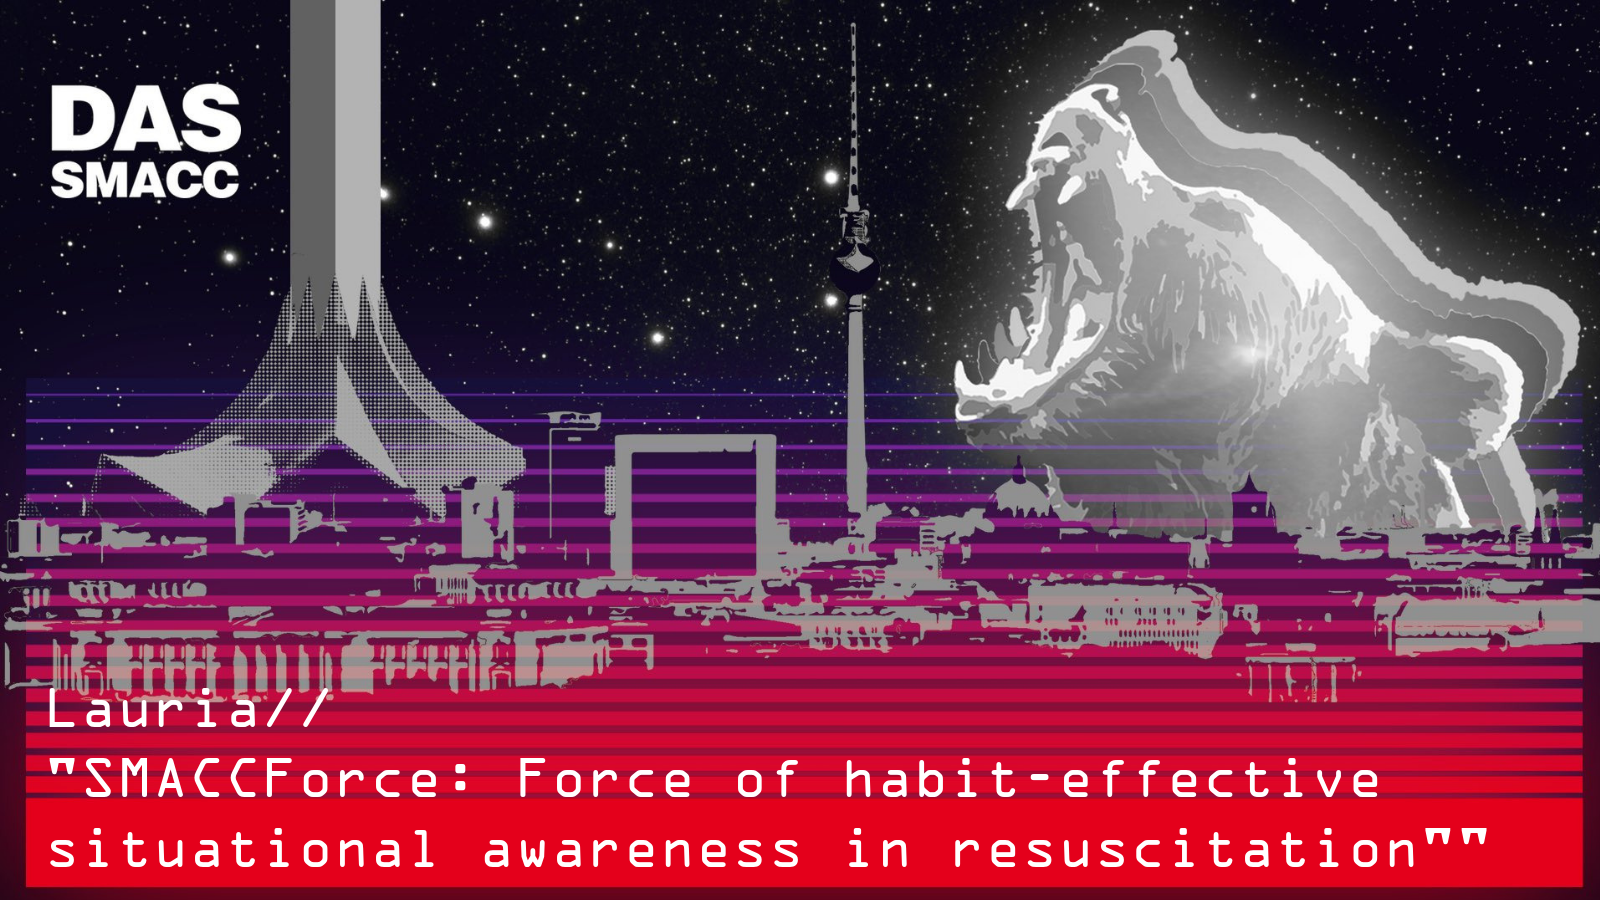 Force of habit-effective situational awareness in resuscitation